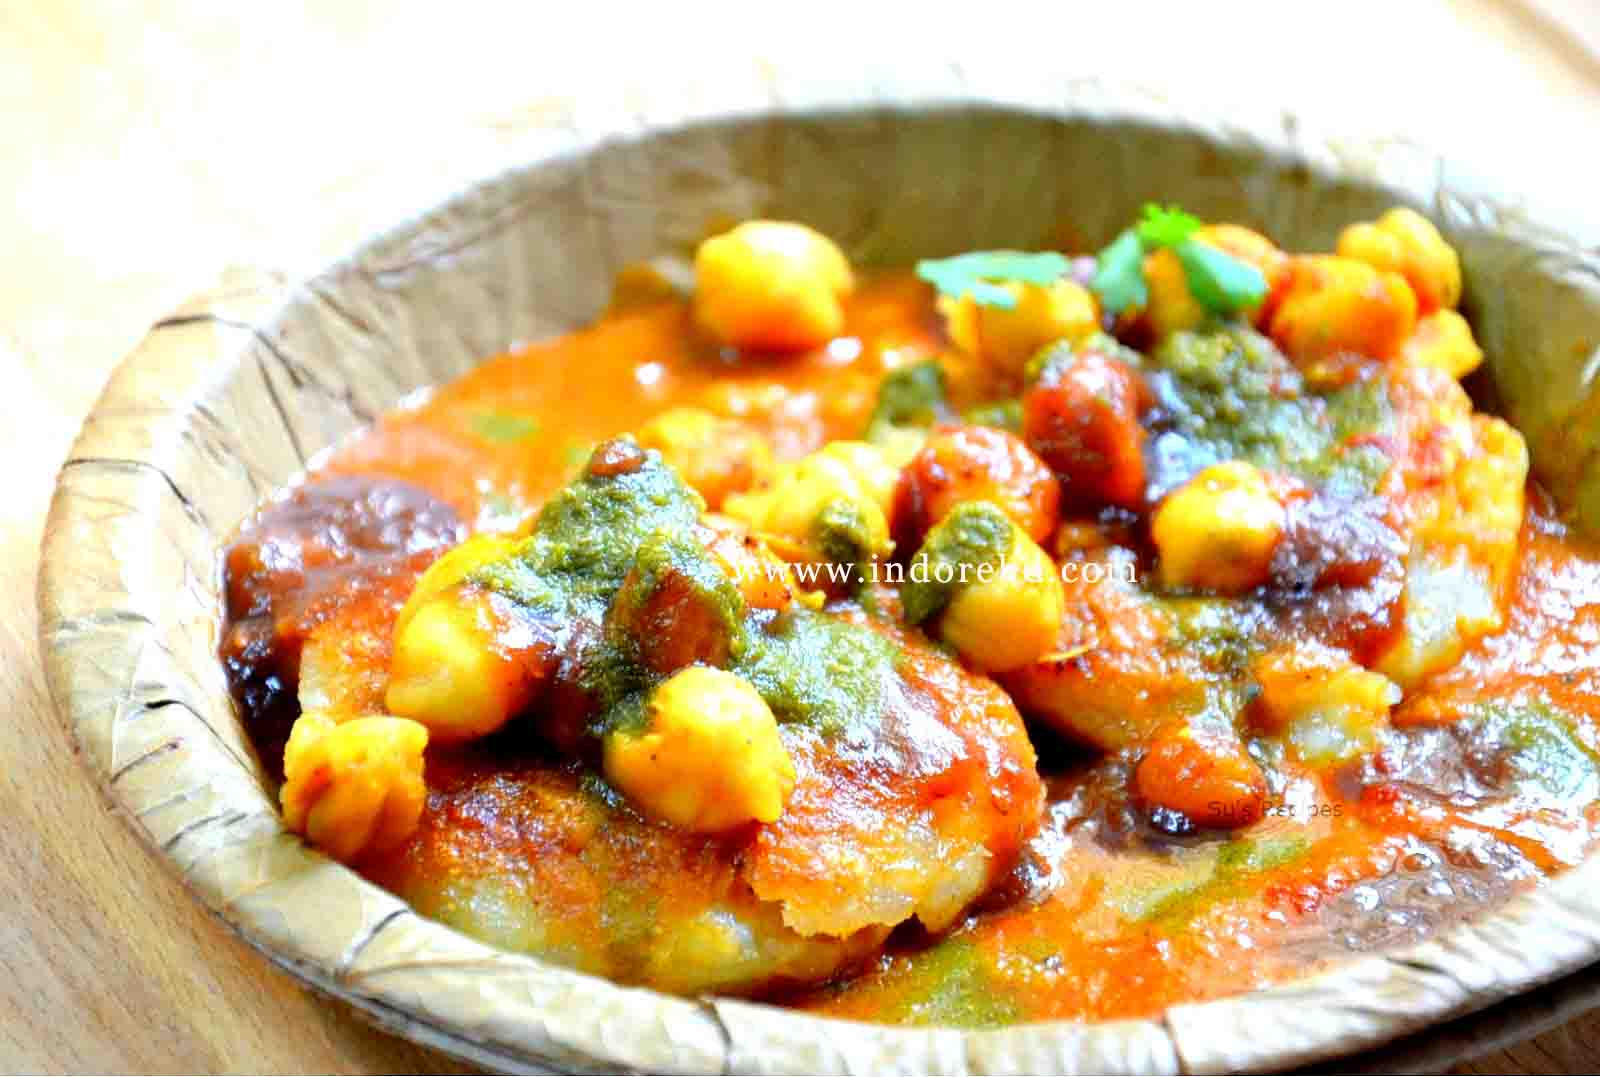 tikki-chole-chaat-indore-hd-e1408906267312-720x460